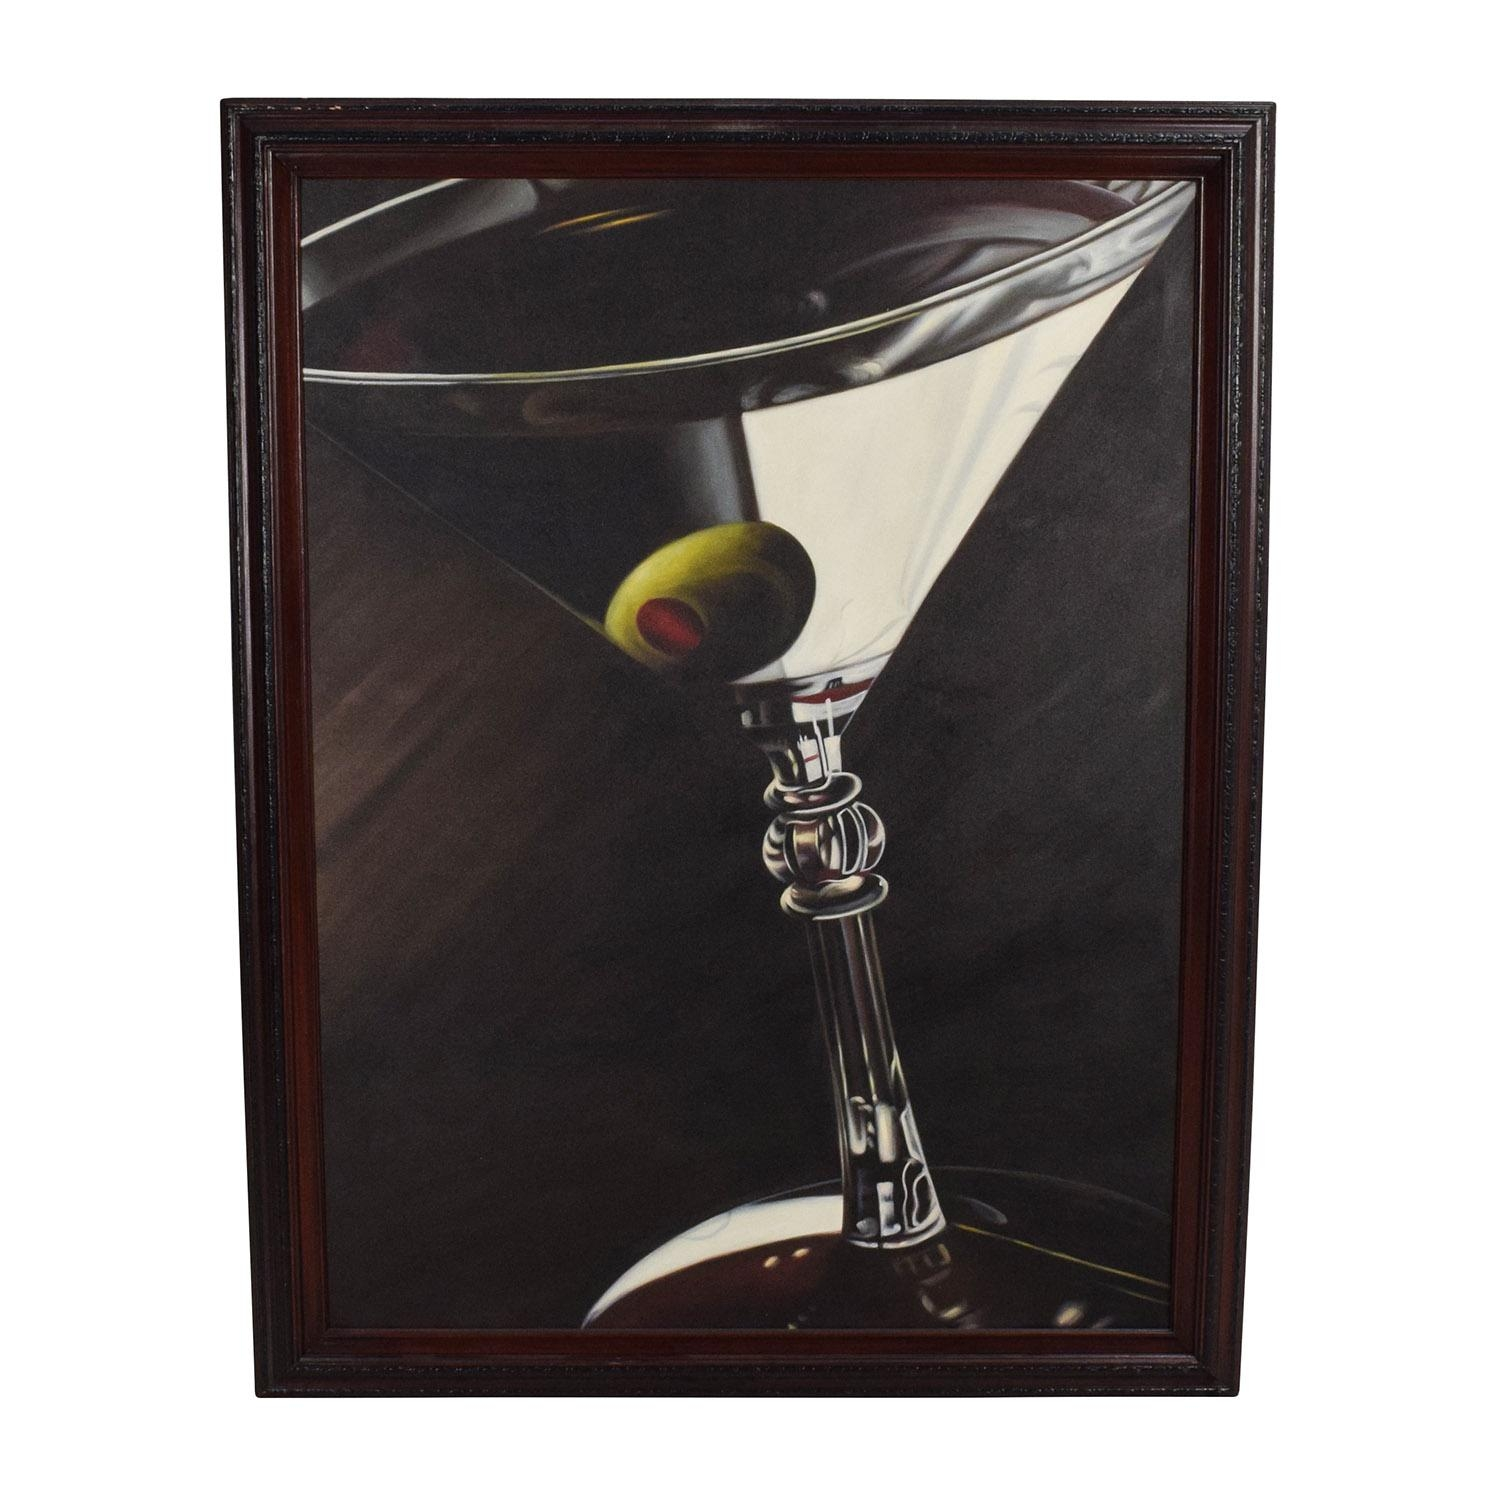 54% Off - French Vineyard Metal Wall Hanging / Decor in Martini Glass Wall Art